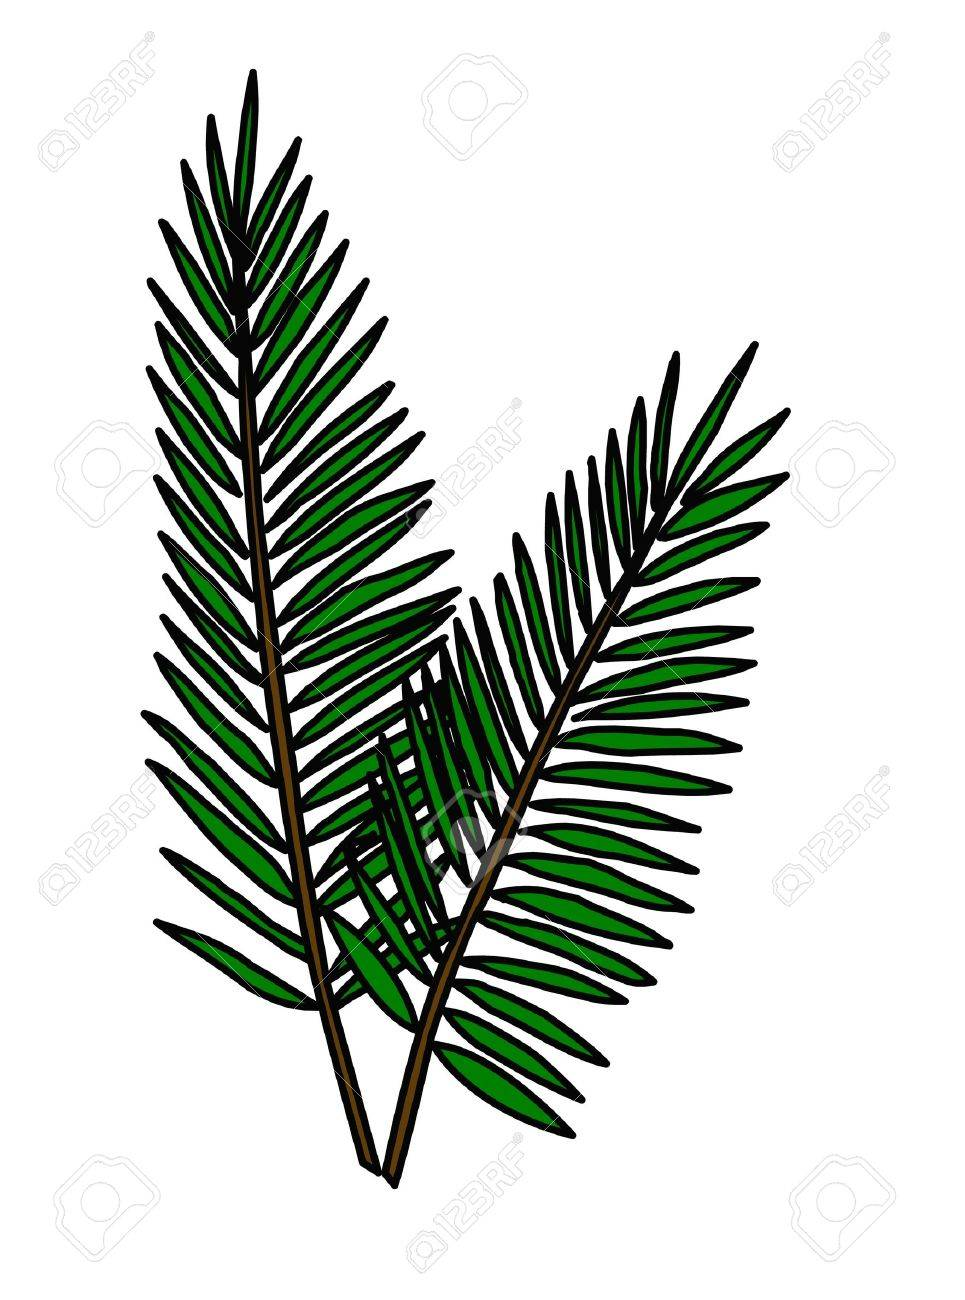 152 palm sunday stock vector illustration and royalty free palm